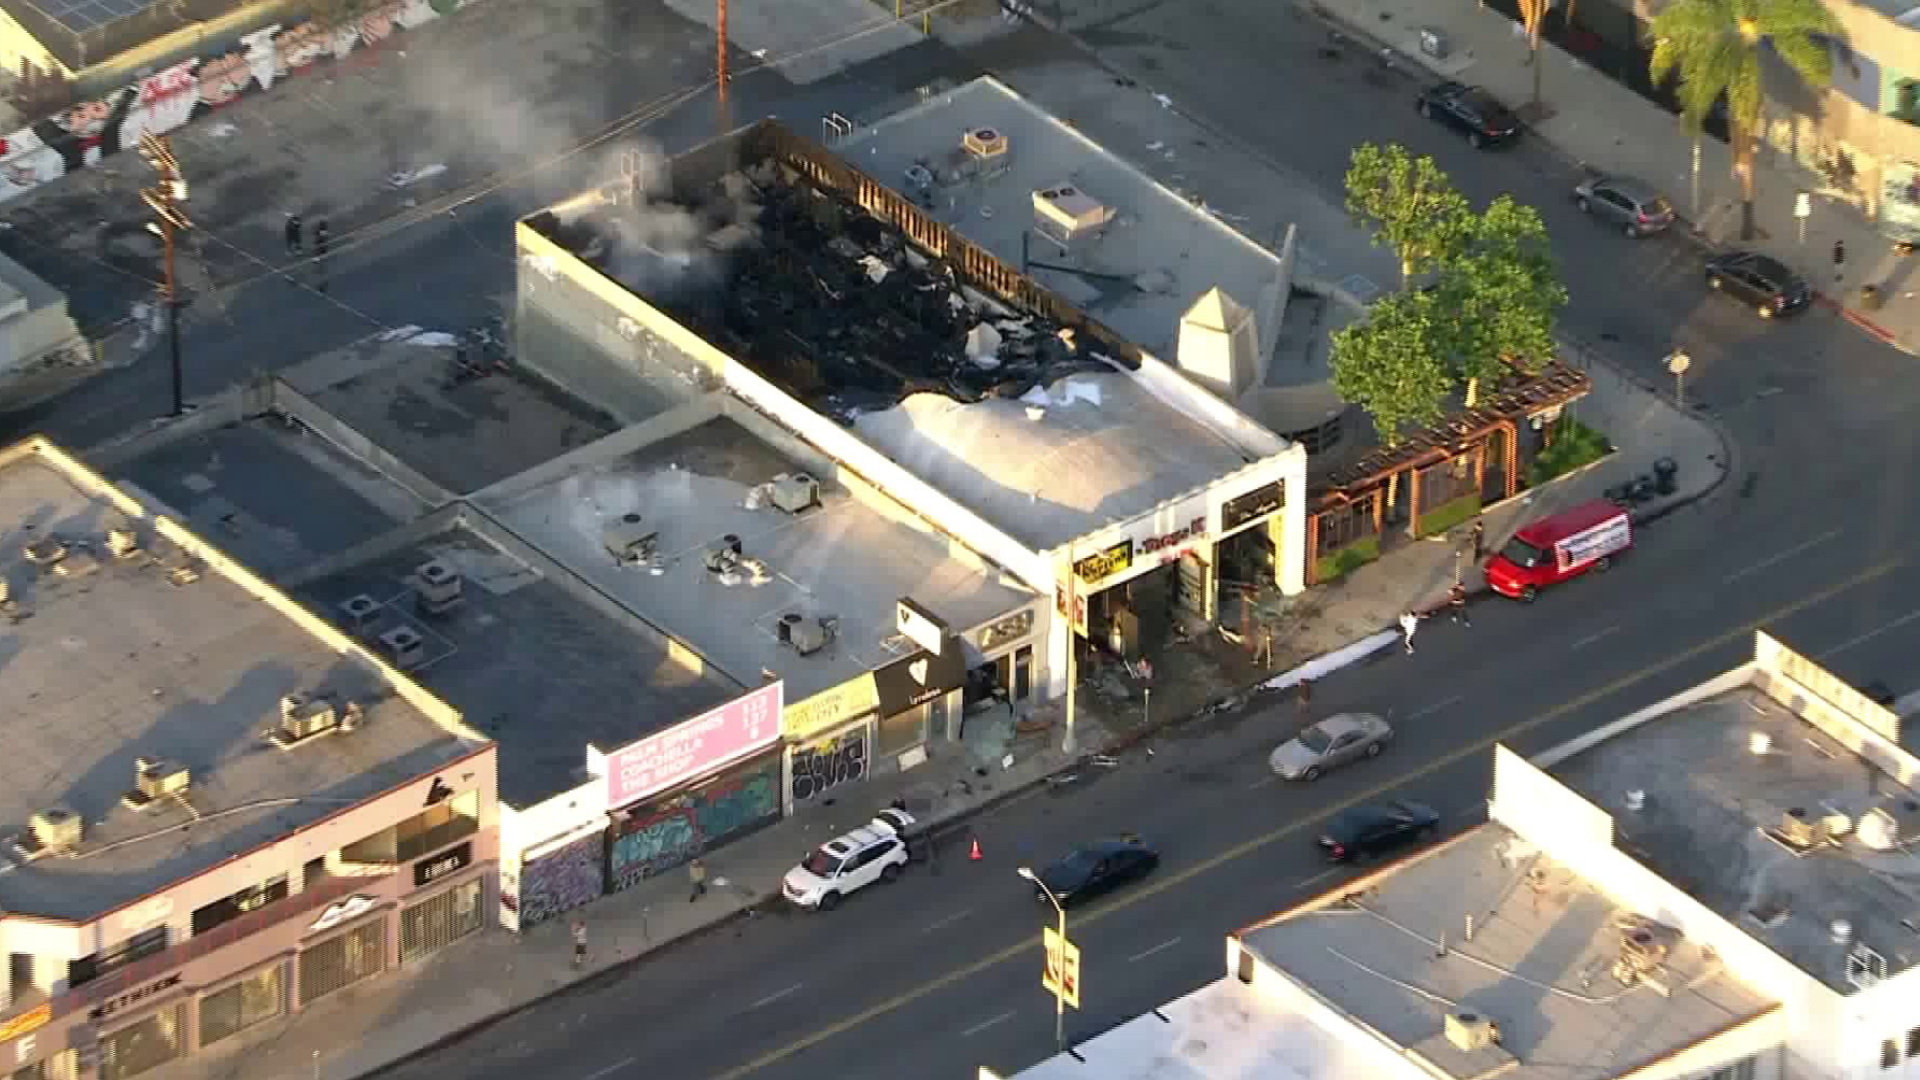 Smoke rises from the roof of a building on Melrose Avenue on May 30, 2020. (Sky5)